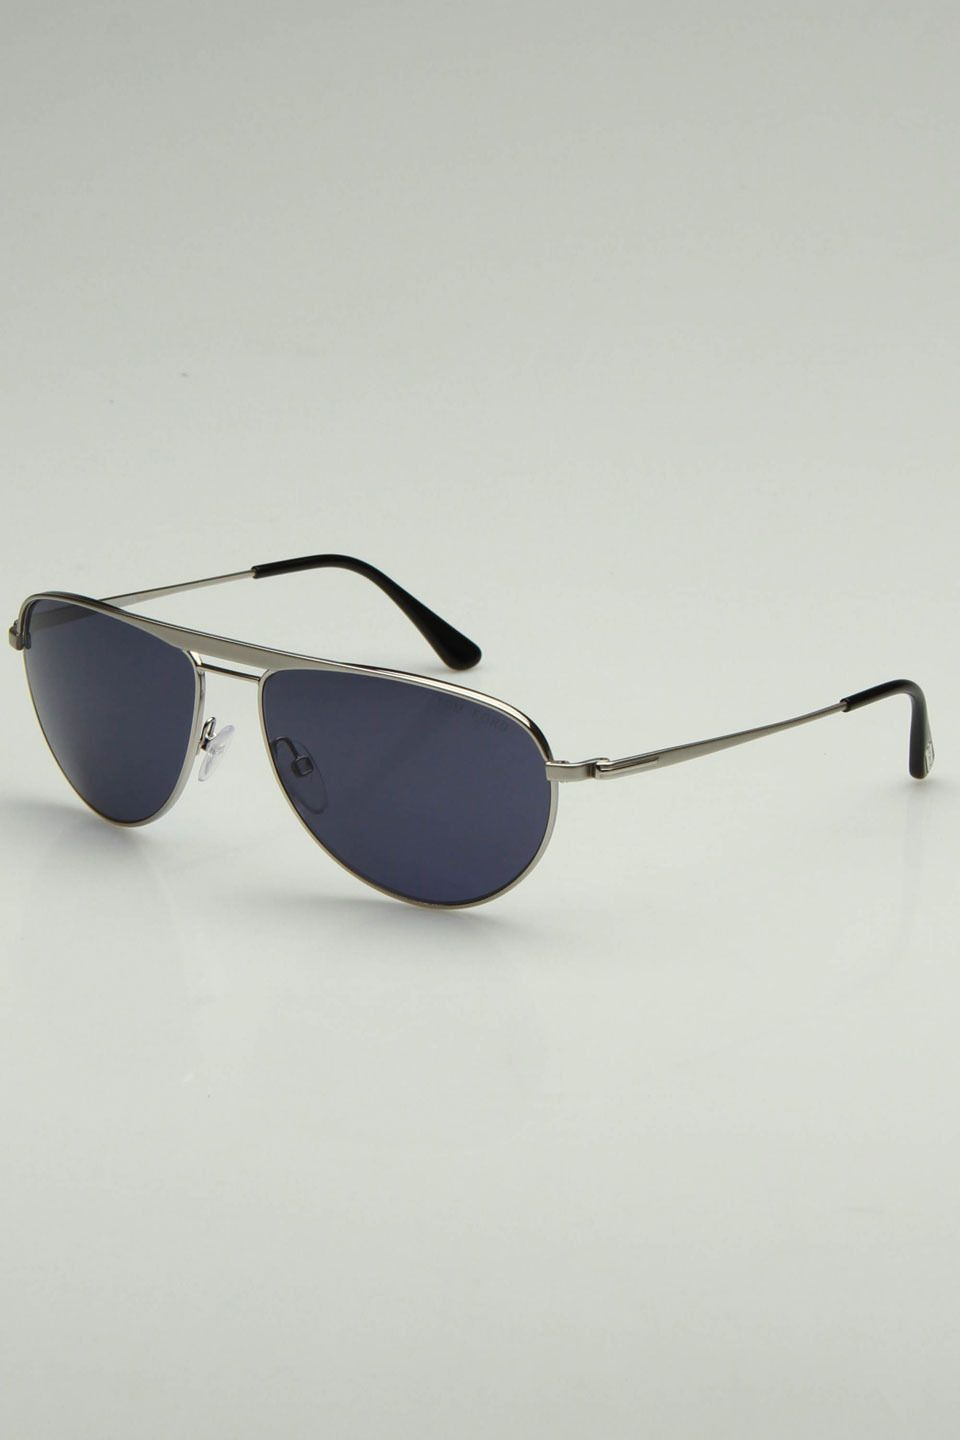 Tom Ford William Sunglasses In Silver  3e46895581083